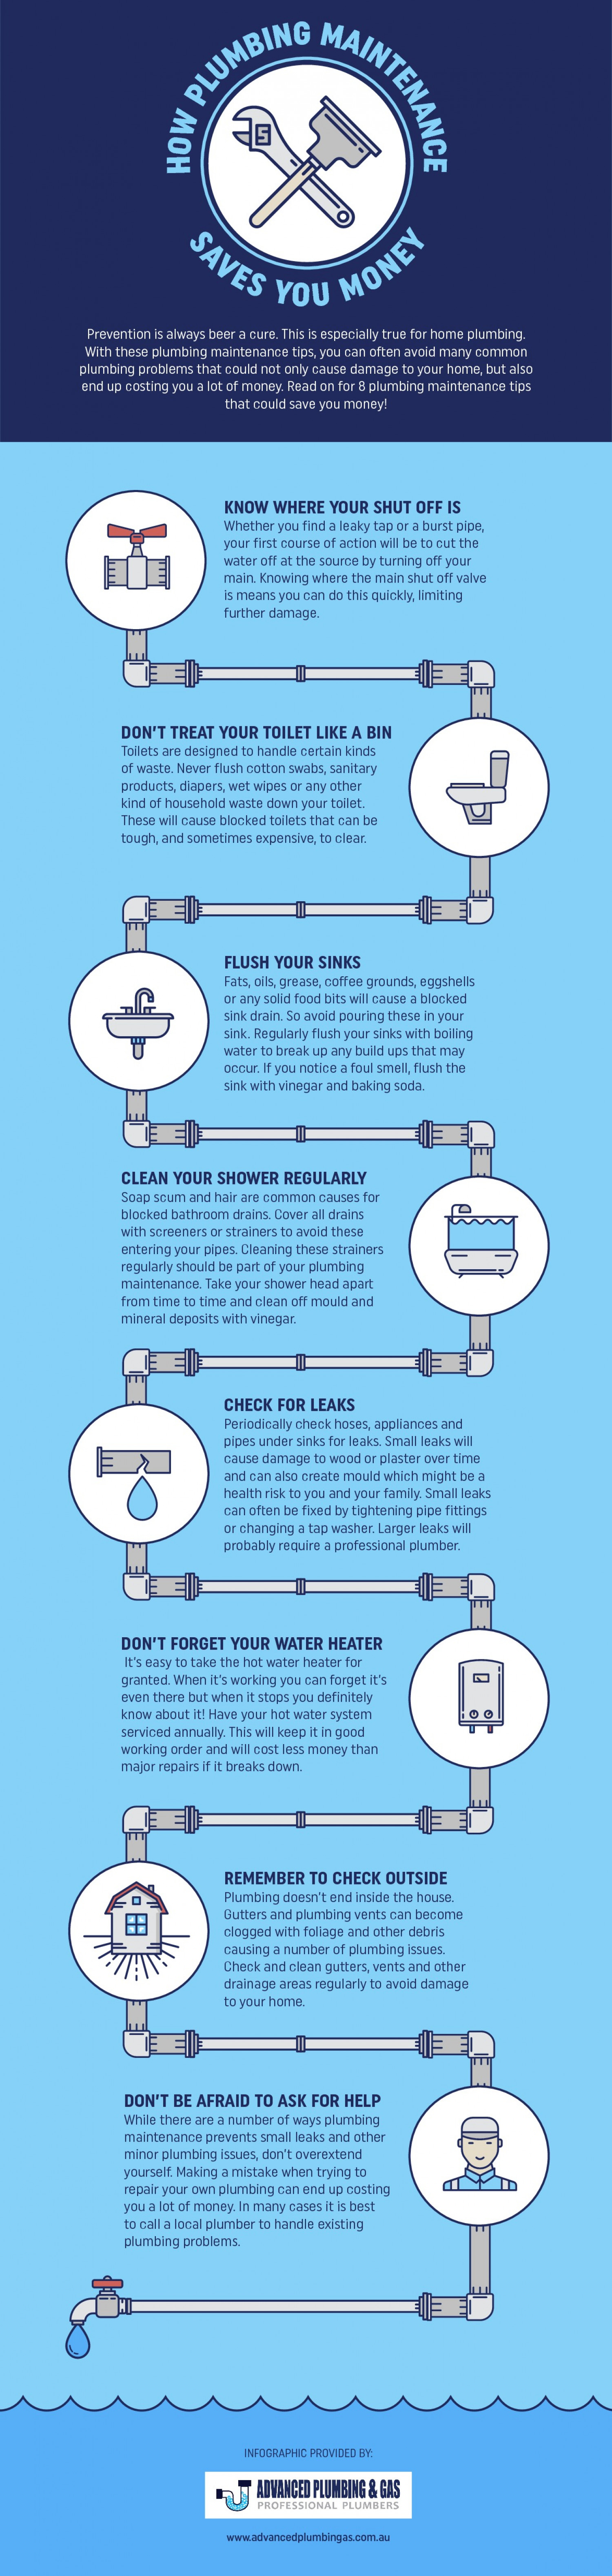 Plumbing Maintenance Tips Infographic Infographic